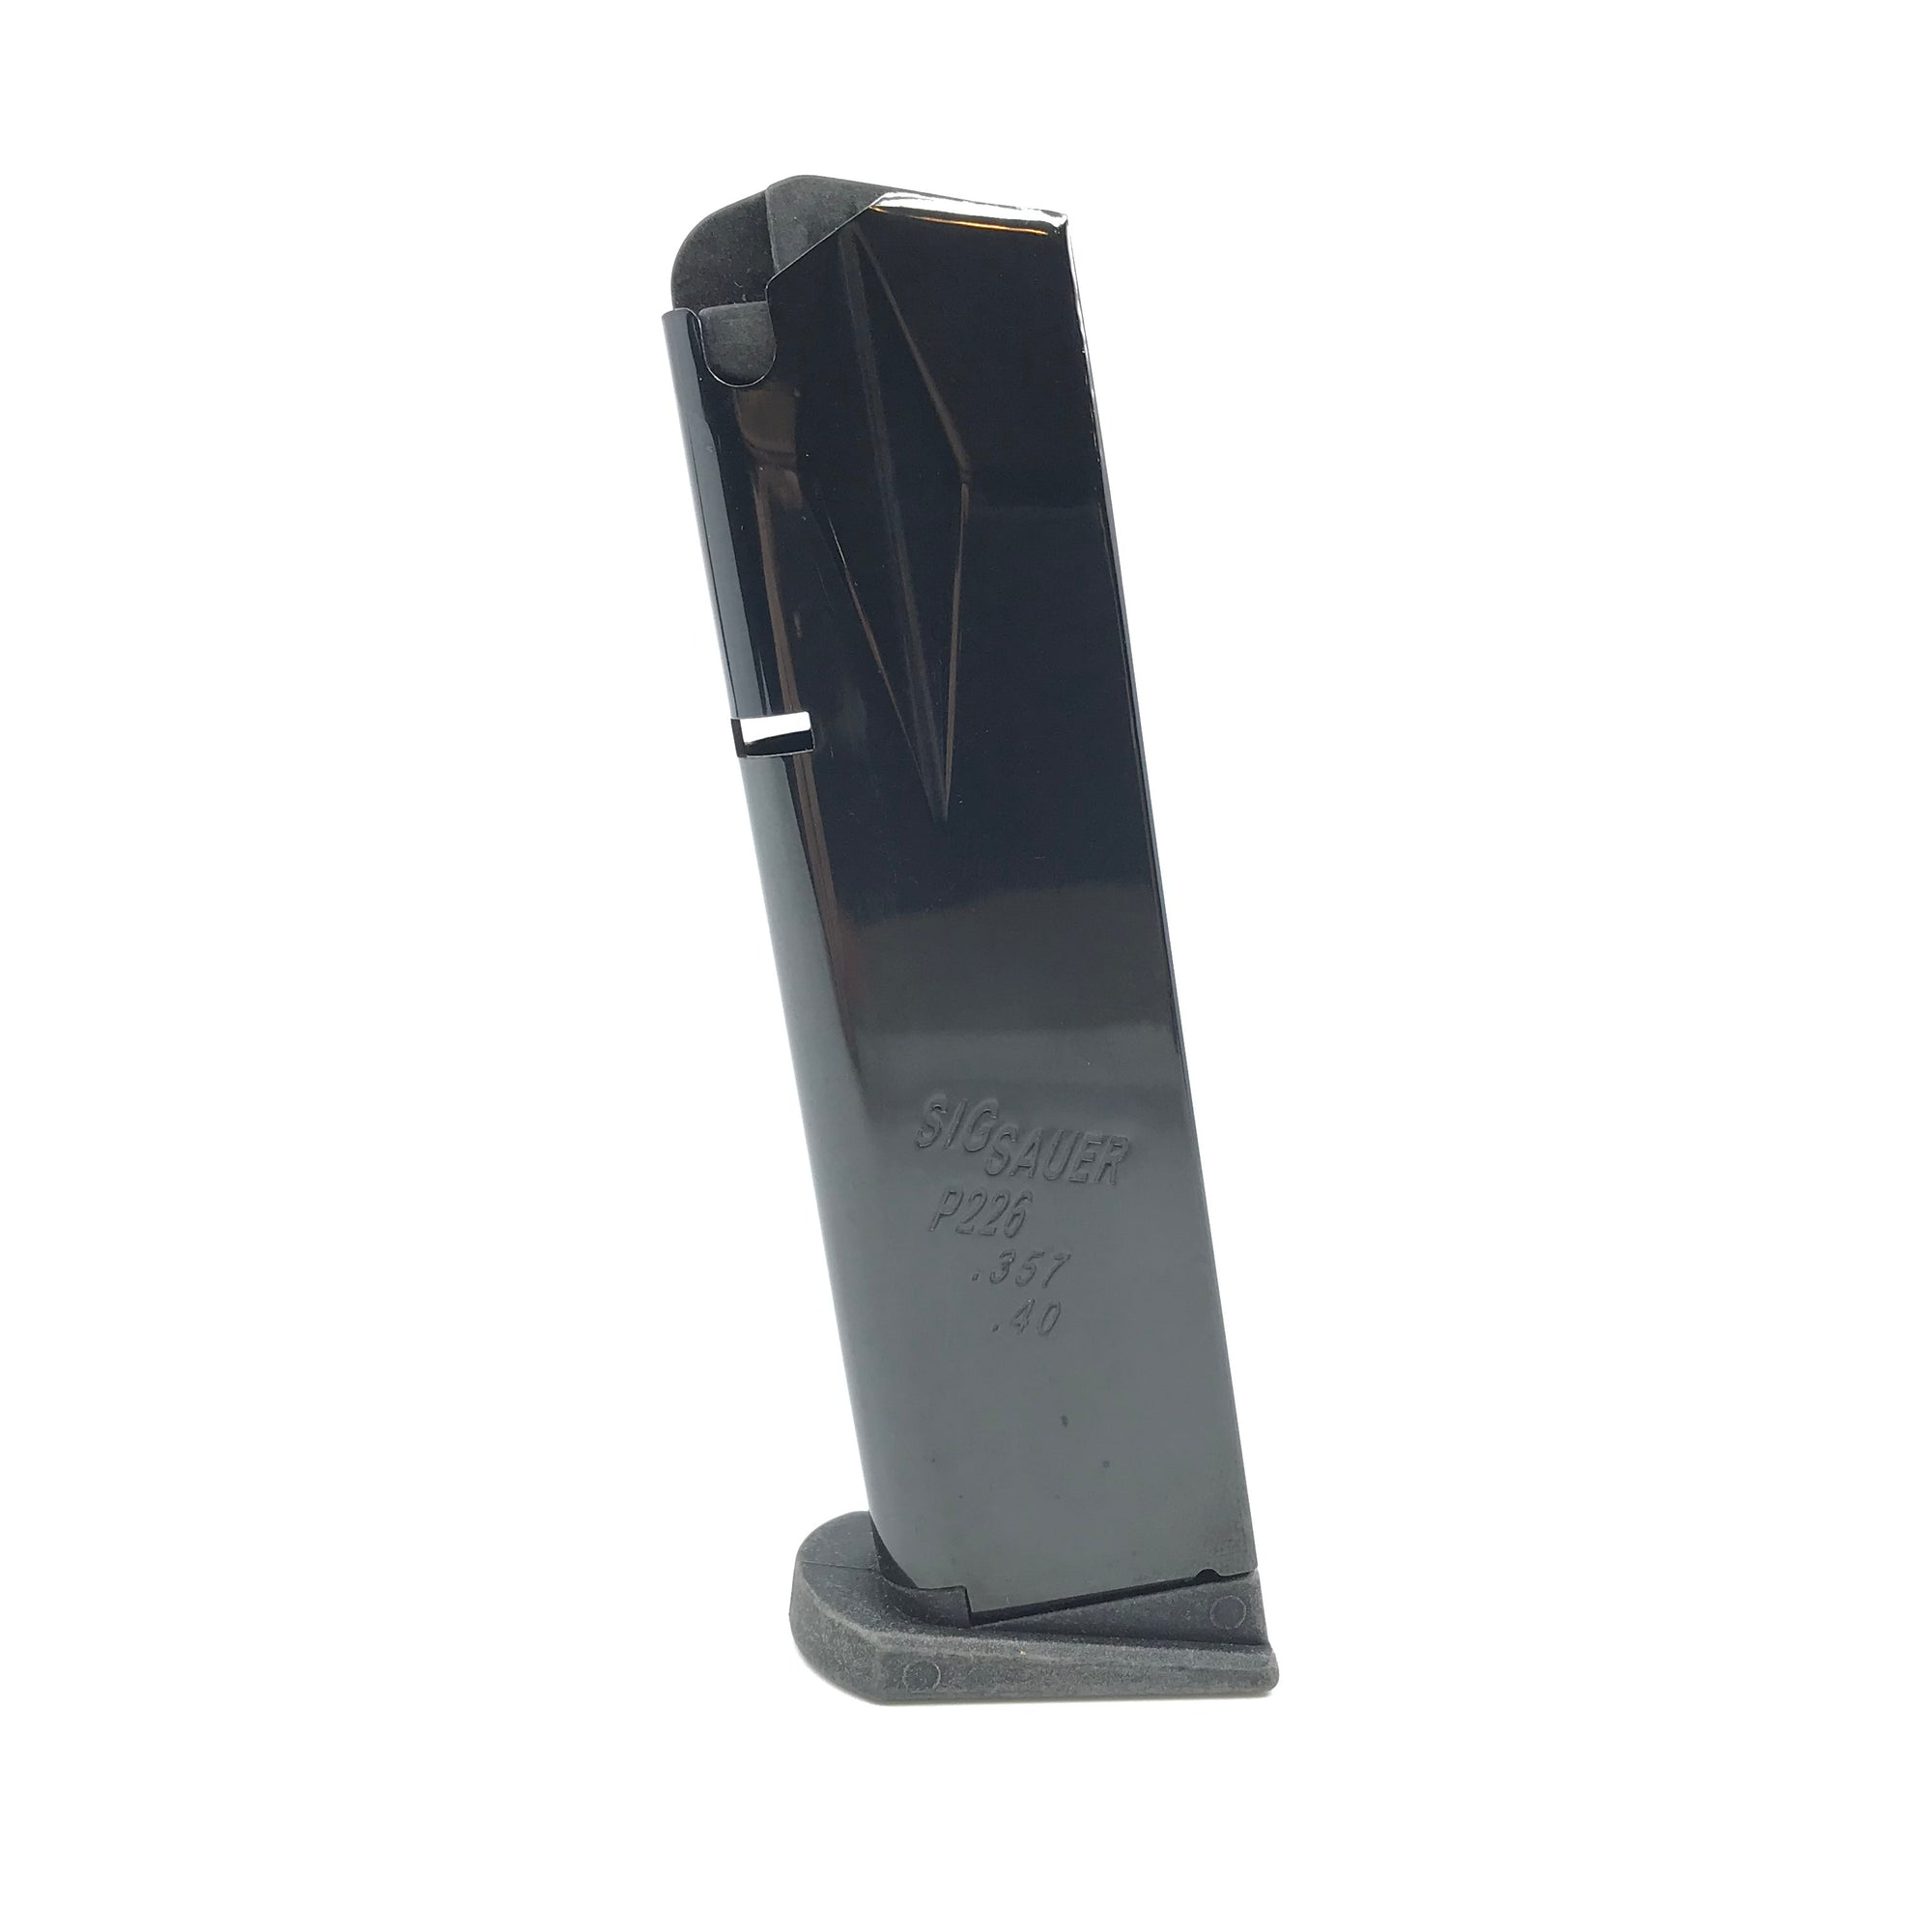 Sig Sauer Model 226 40 S&W and 357 SIG 10rd Magazine